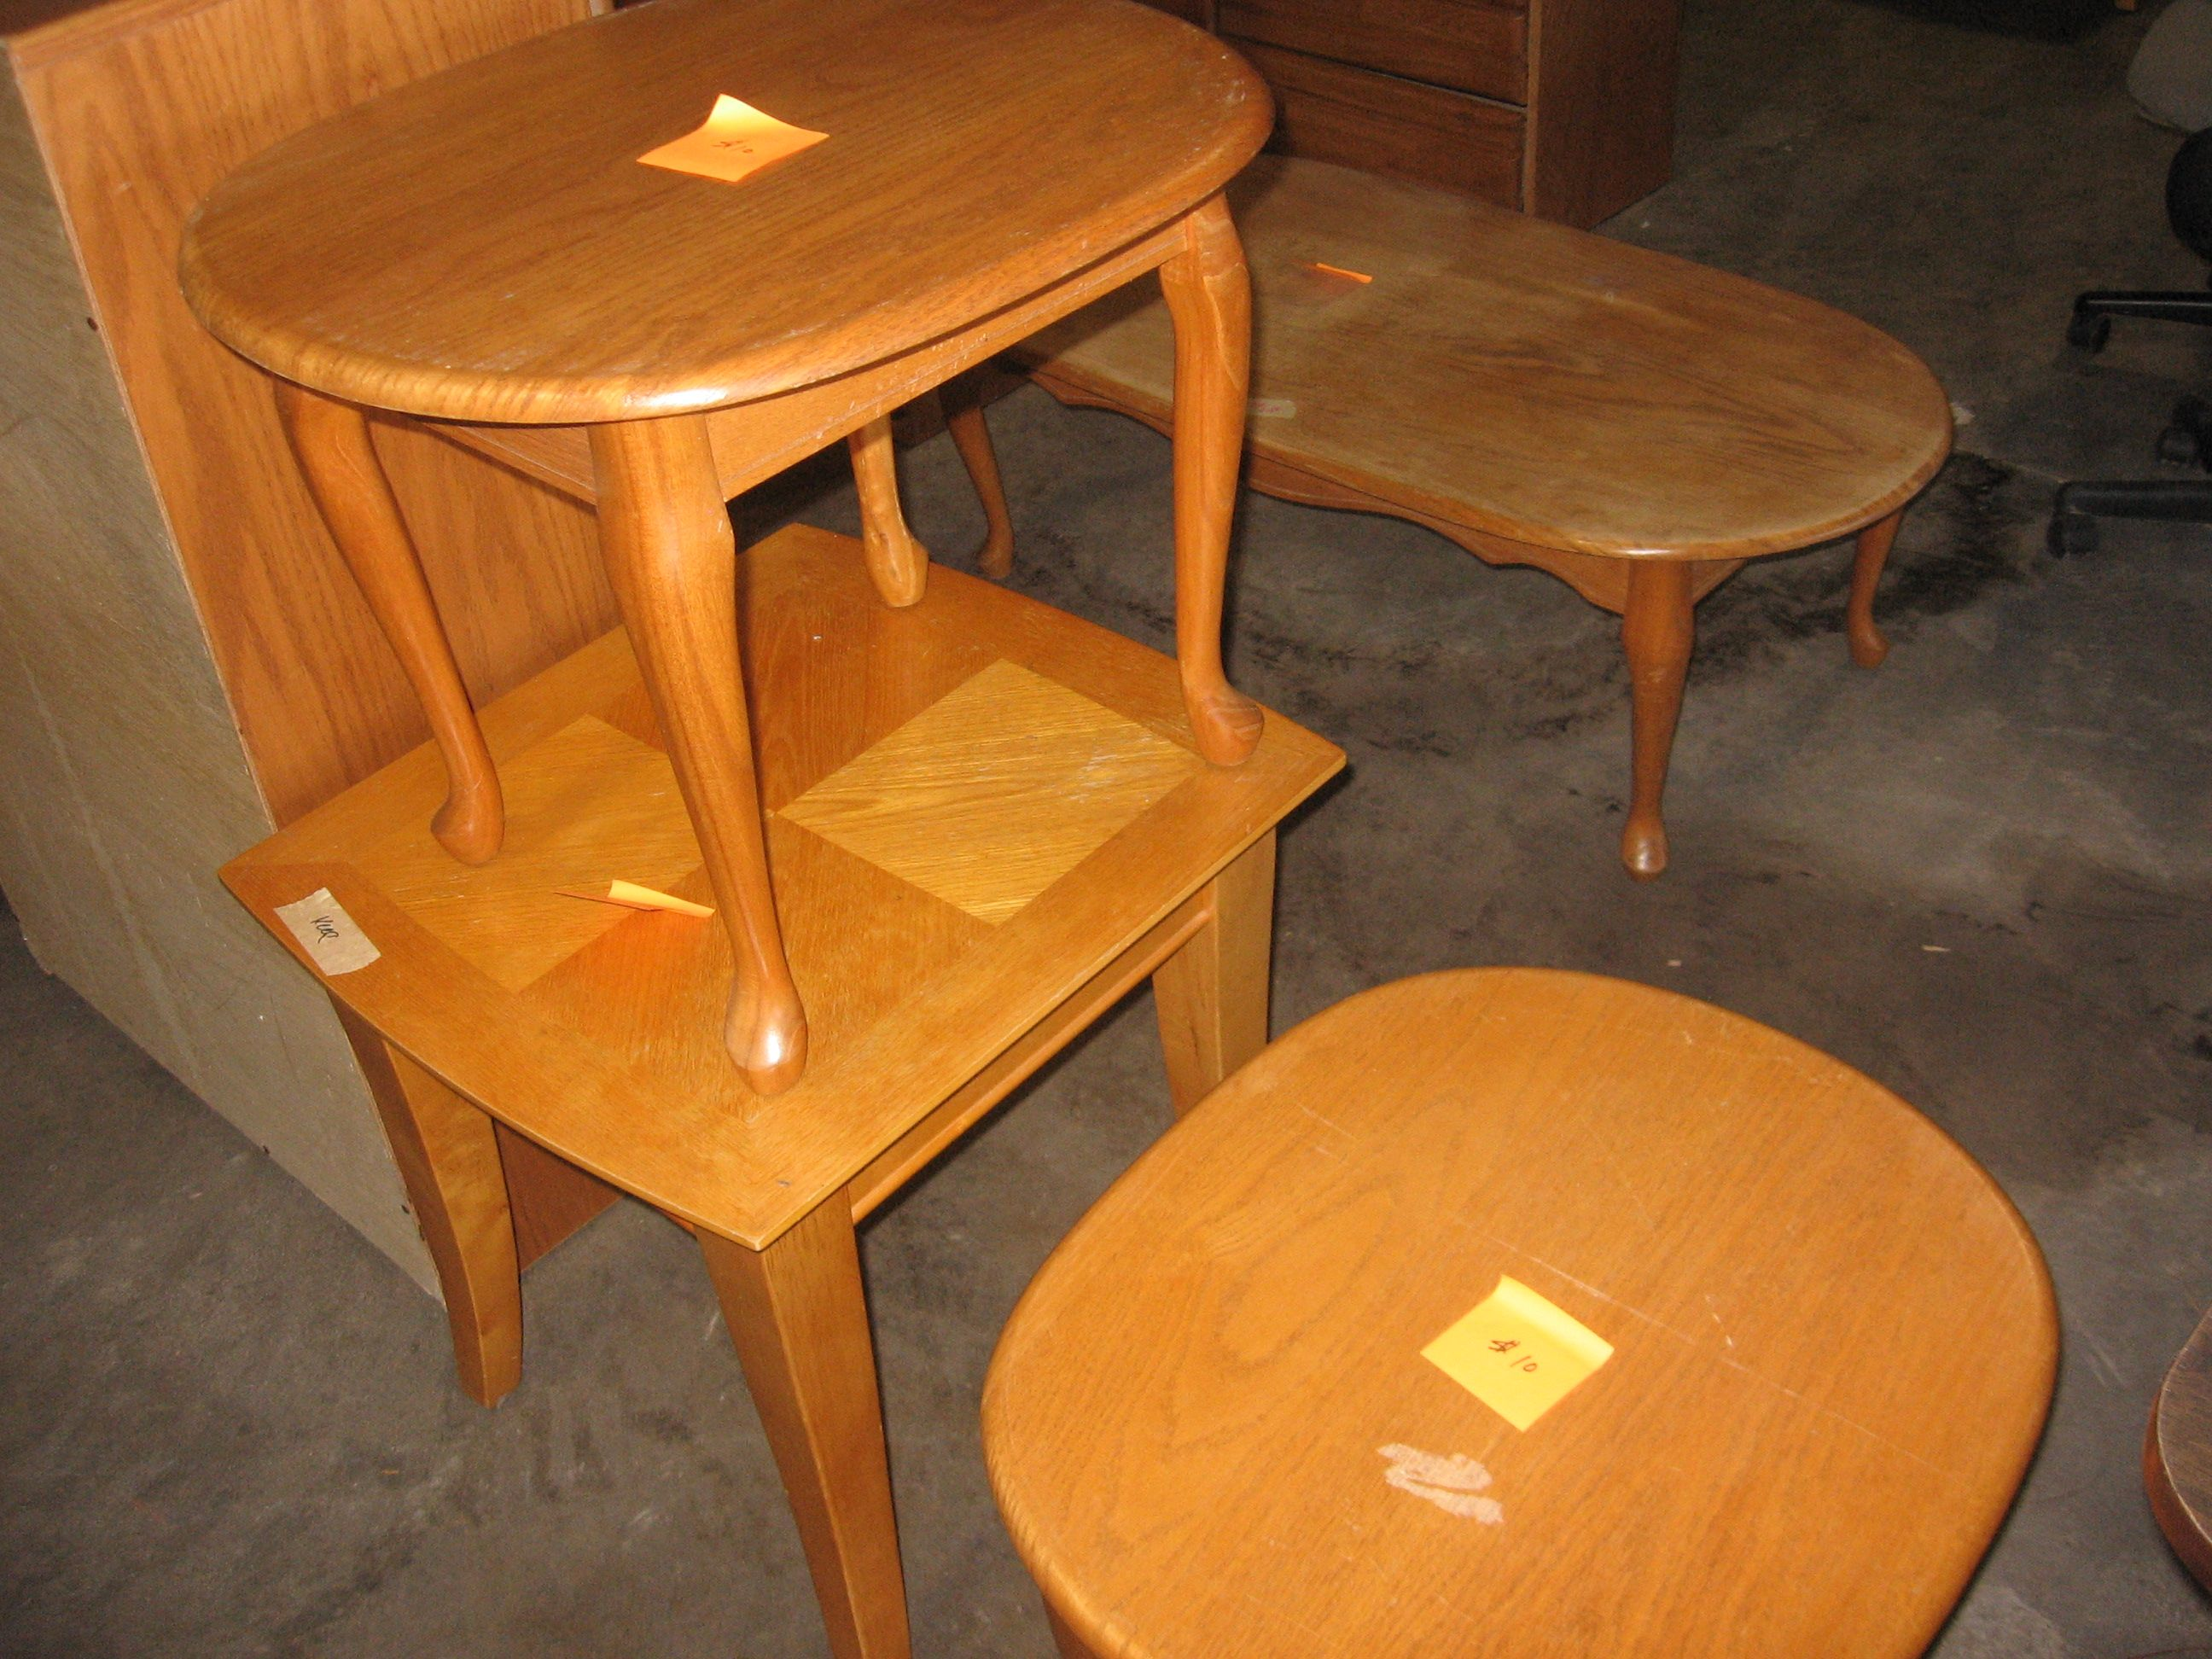 Used furniture in Doulos' Garage Sale in Branson , MO for $75. Used dressers, desks, filing-cabinets, chairs, school-desks, books, bunk beds, other. 10 to 75 negotiable.  Cash only.  [Phone Number removed]